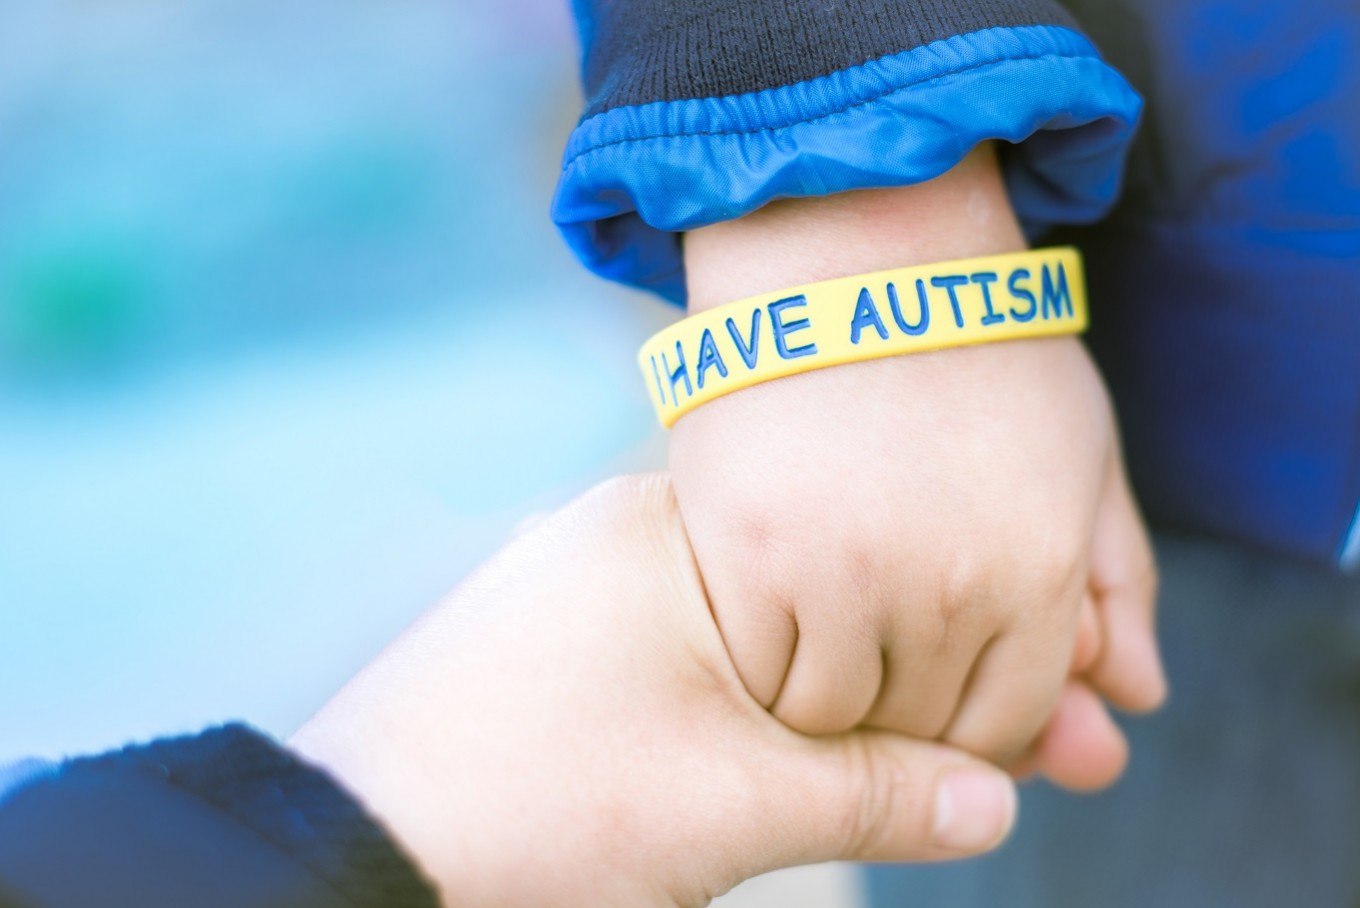 Antidepressants during pregnancy linked to autism in kids: study